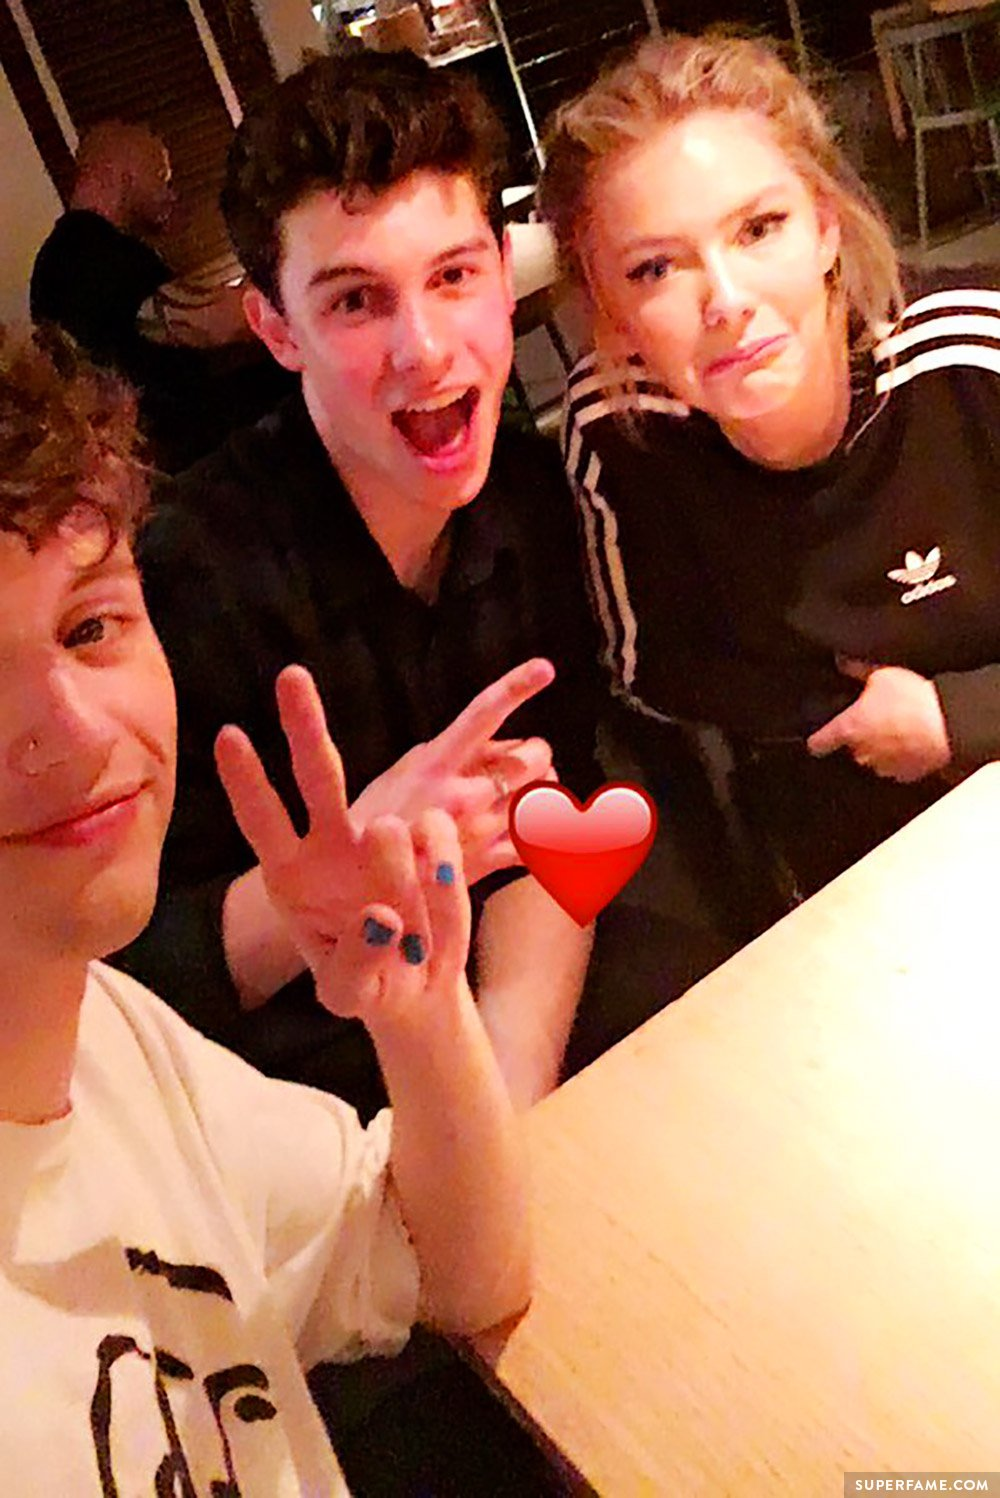 Troye, Astrid and Shawn.